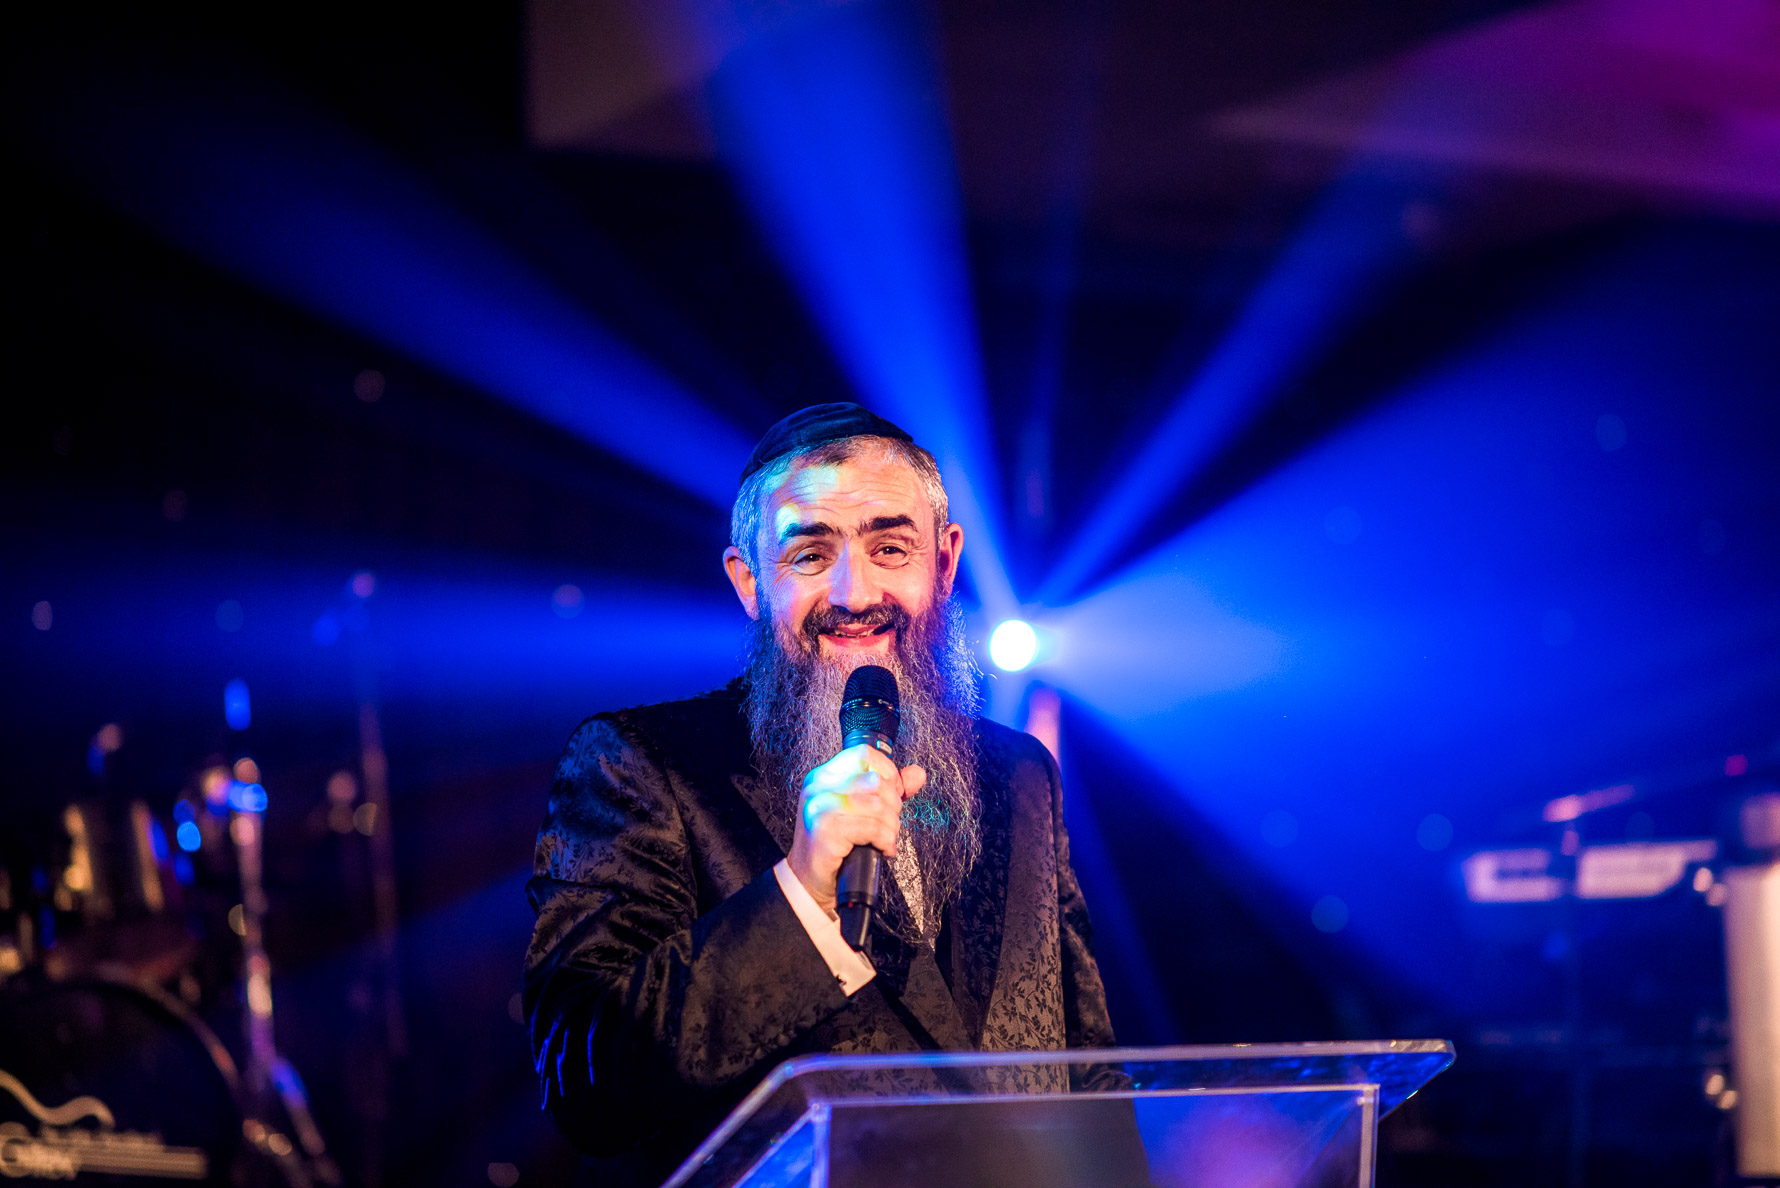 rabbi speech